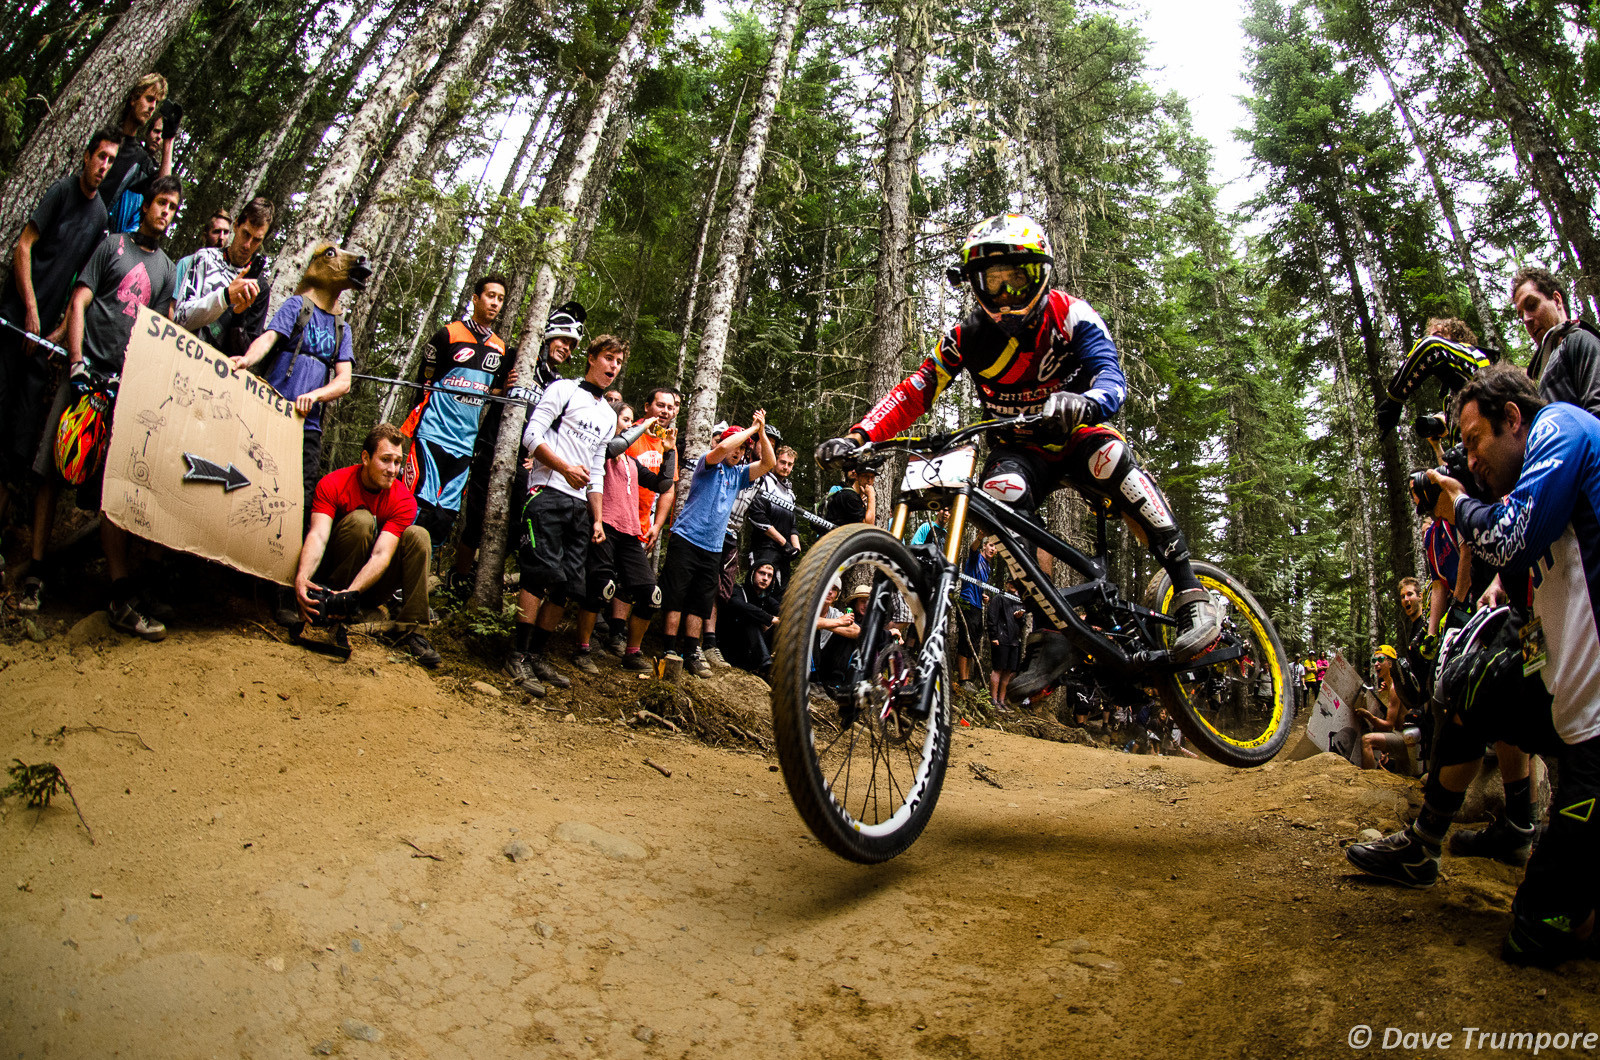 Mick Hannah Takes 2nd at Crankworx Air DH - Crankworx Whistler Air DH - Mountain Biking Pictures - Vital MTB